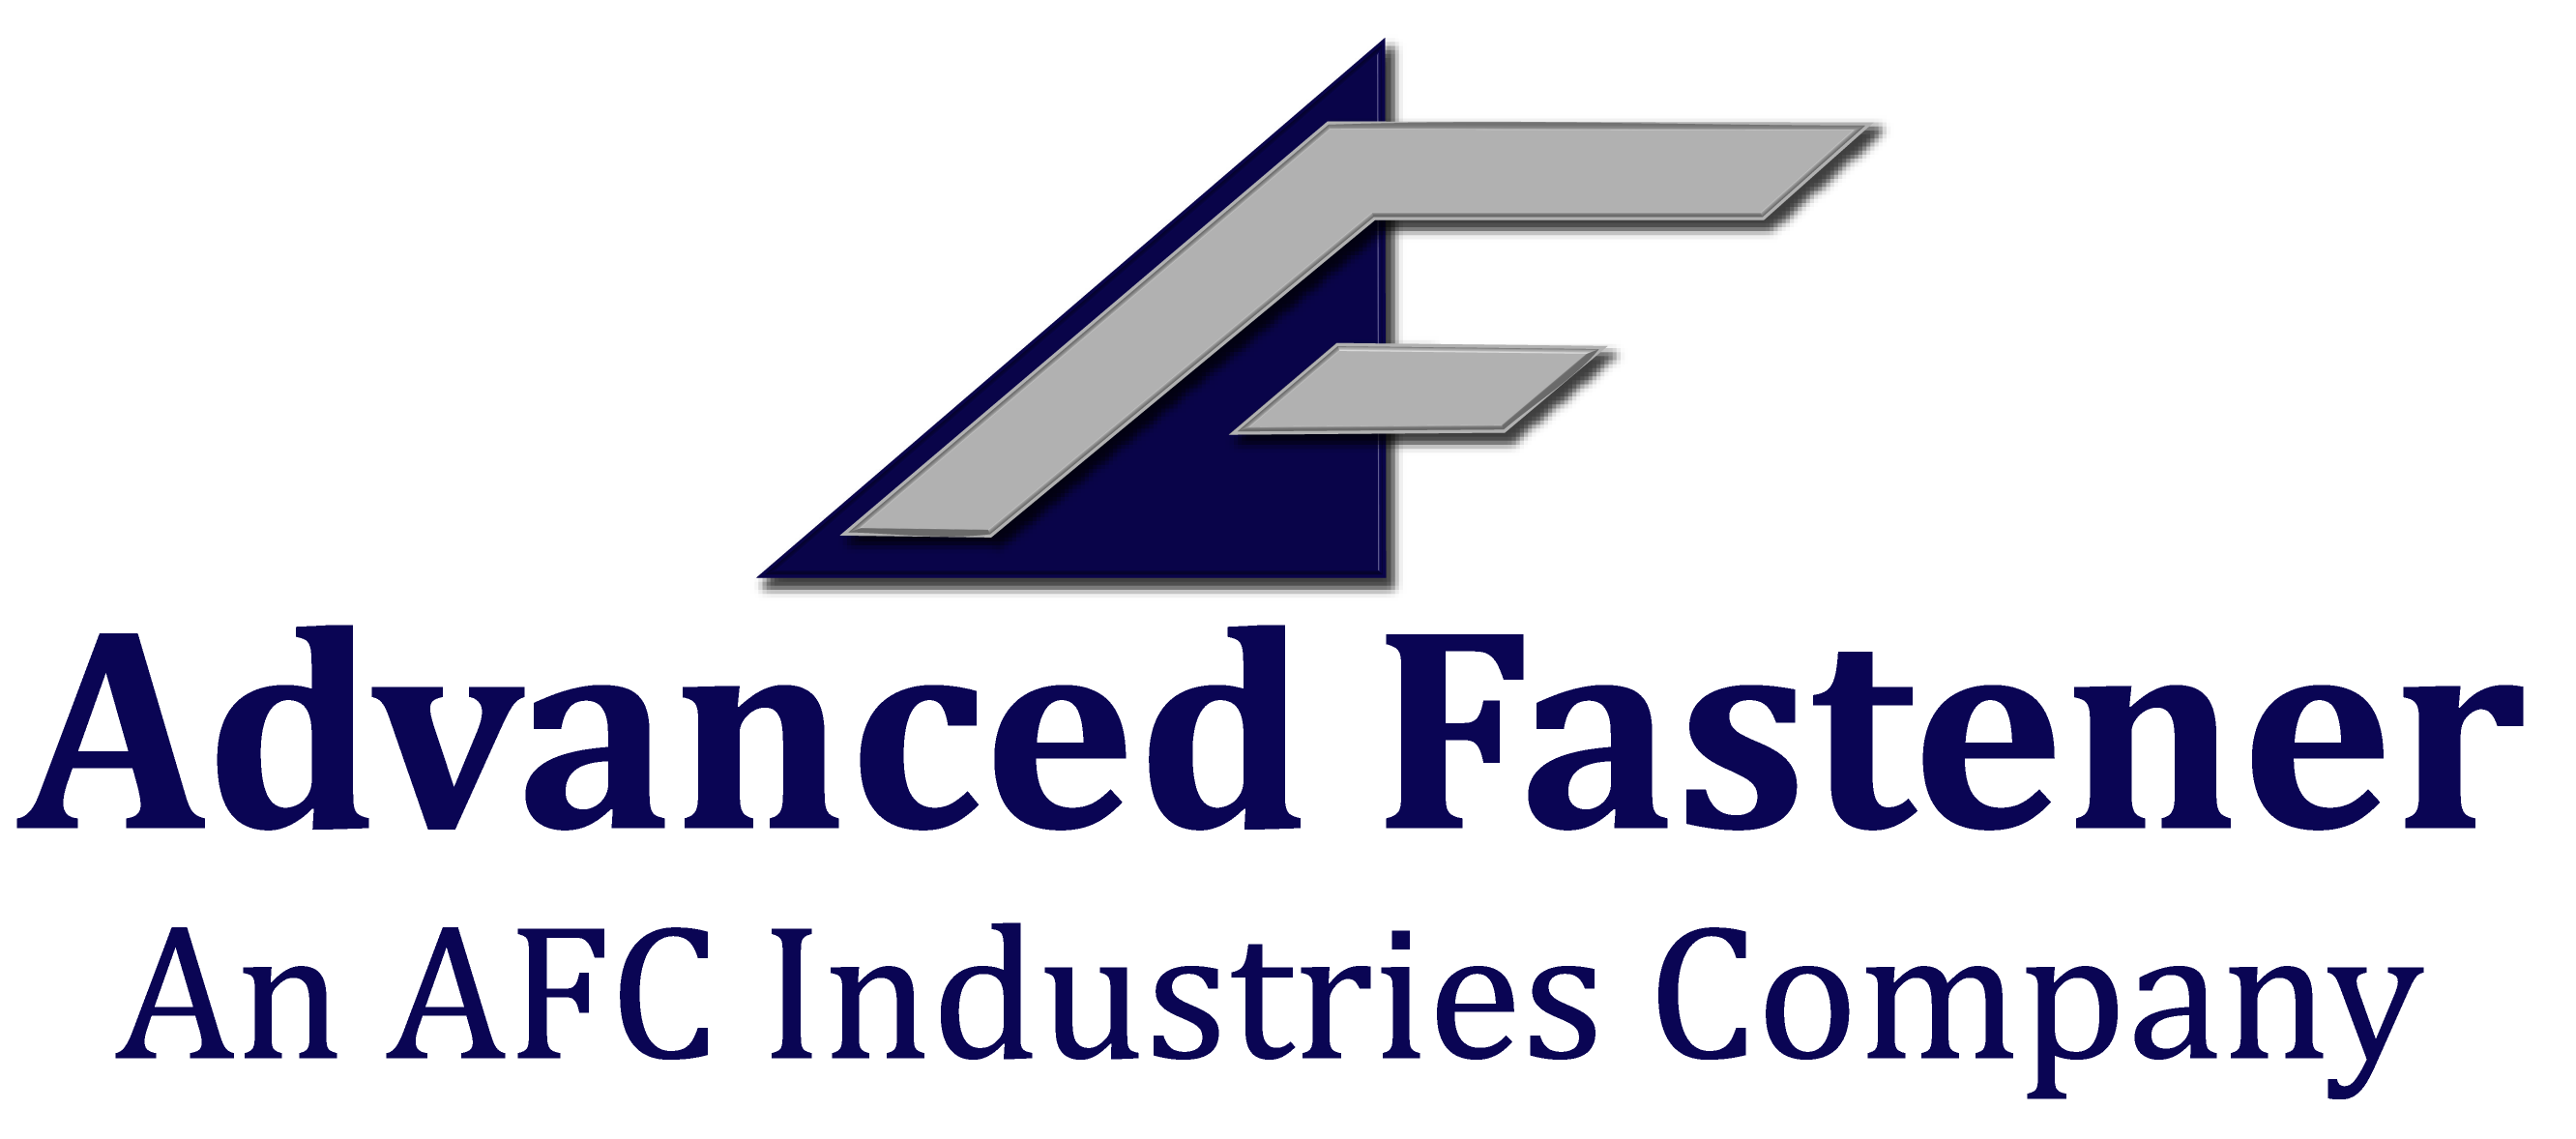 Advanced_Fasteners_centered_revision_17_oct_2017_final.png